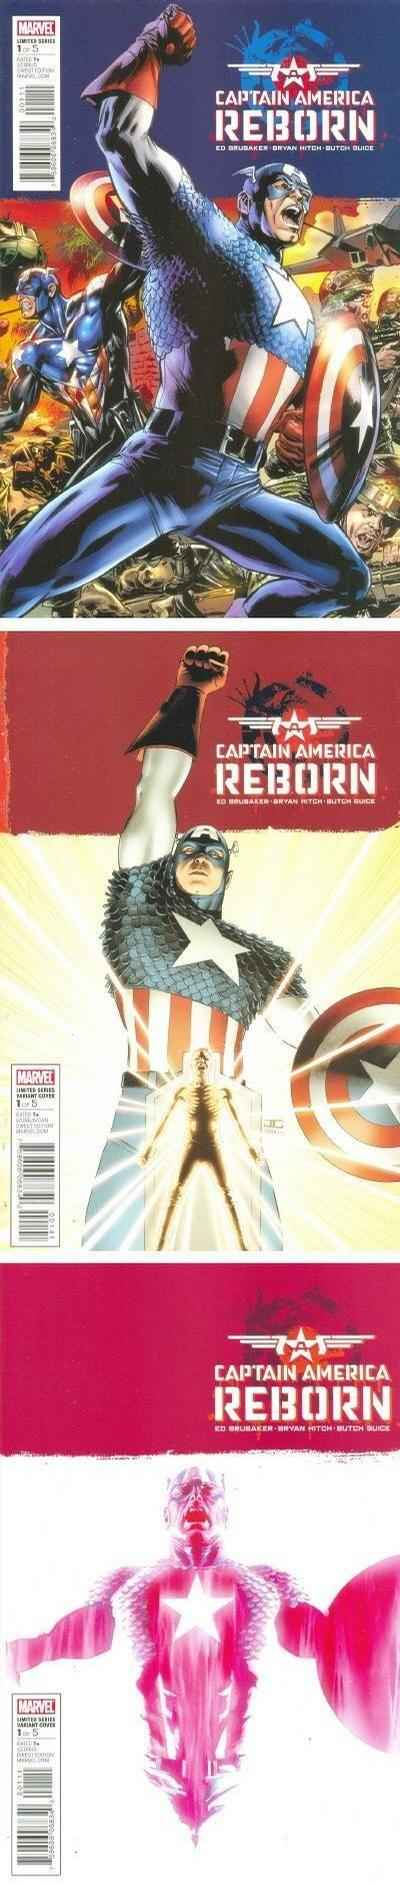 Reborn comic books